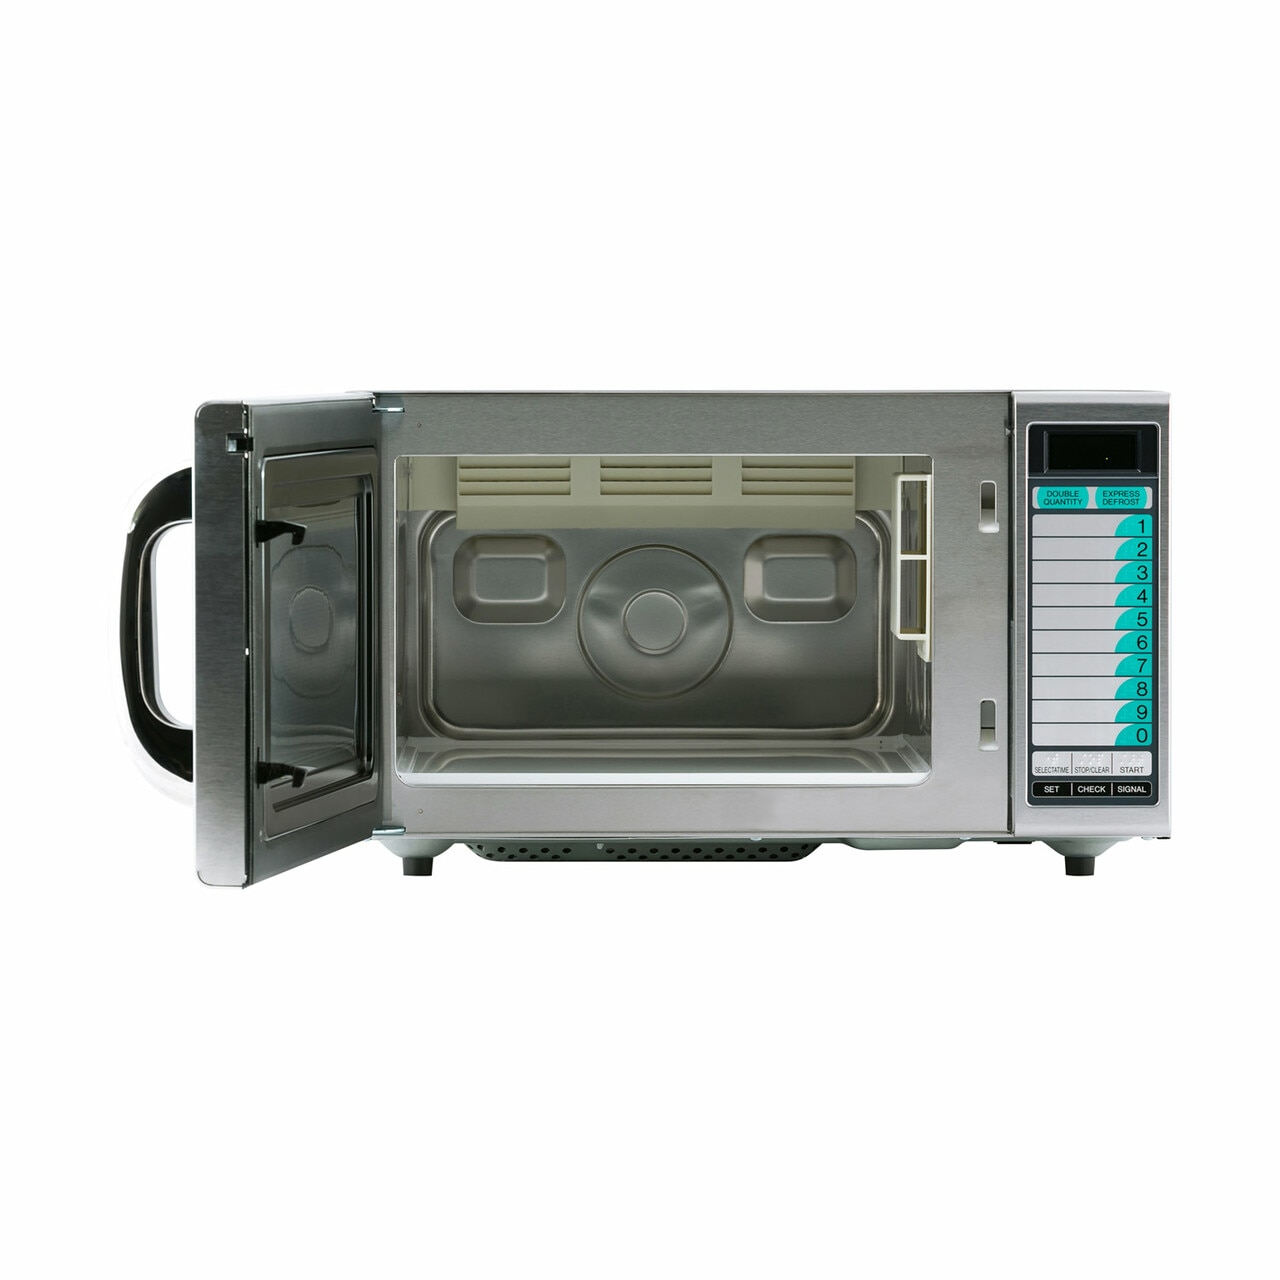 Medium Duty Commercial Microwave Oven with 1000 Watts (R21LVF) – front view with door open